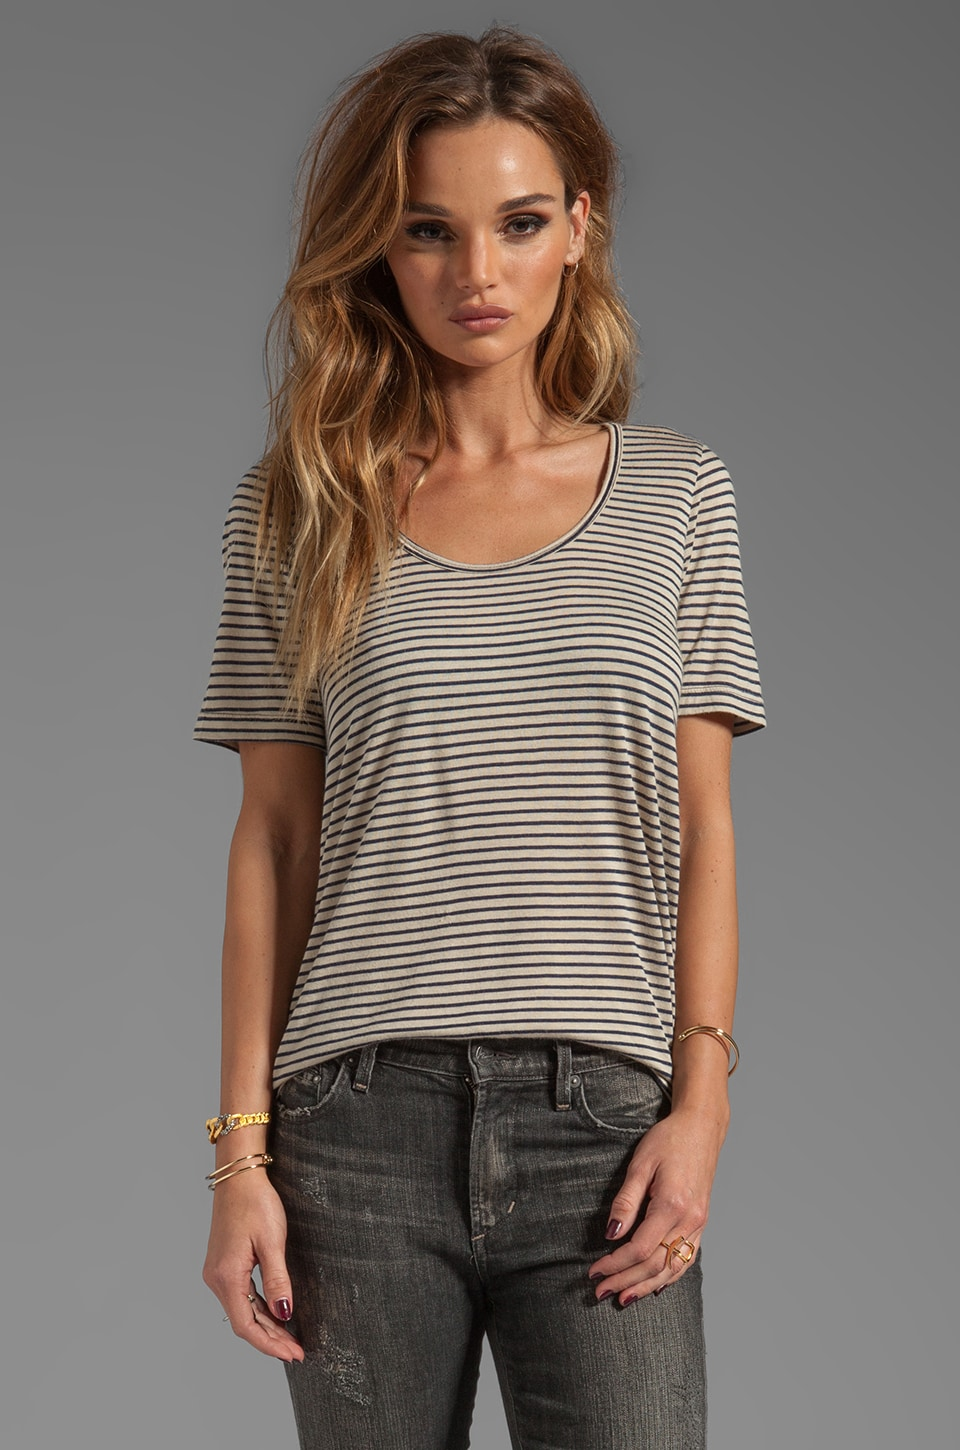 19 4t Short Sleeve Scoop Neck Tee en Navy/Beige Stripe